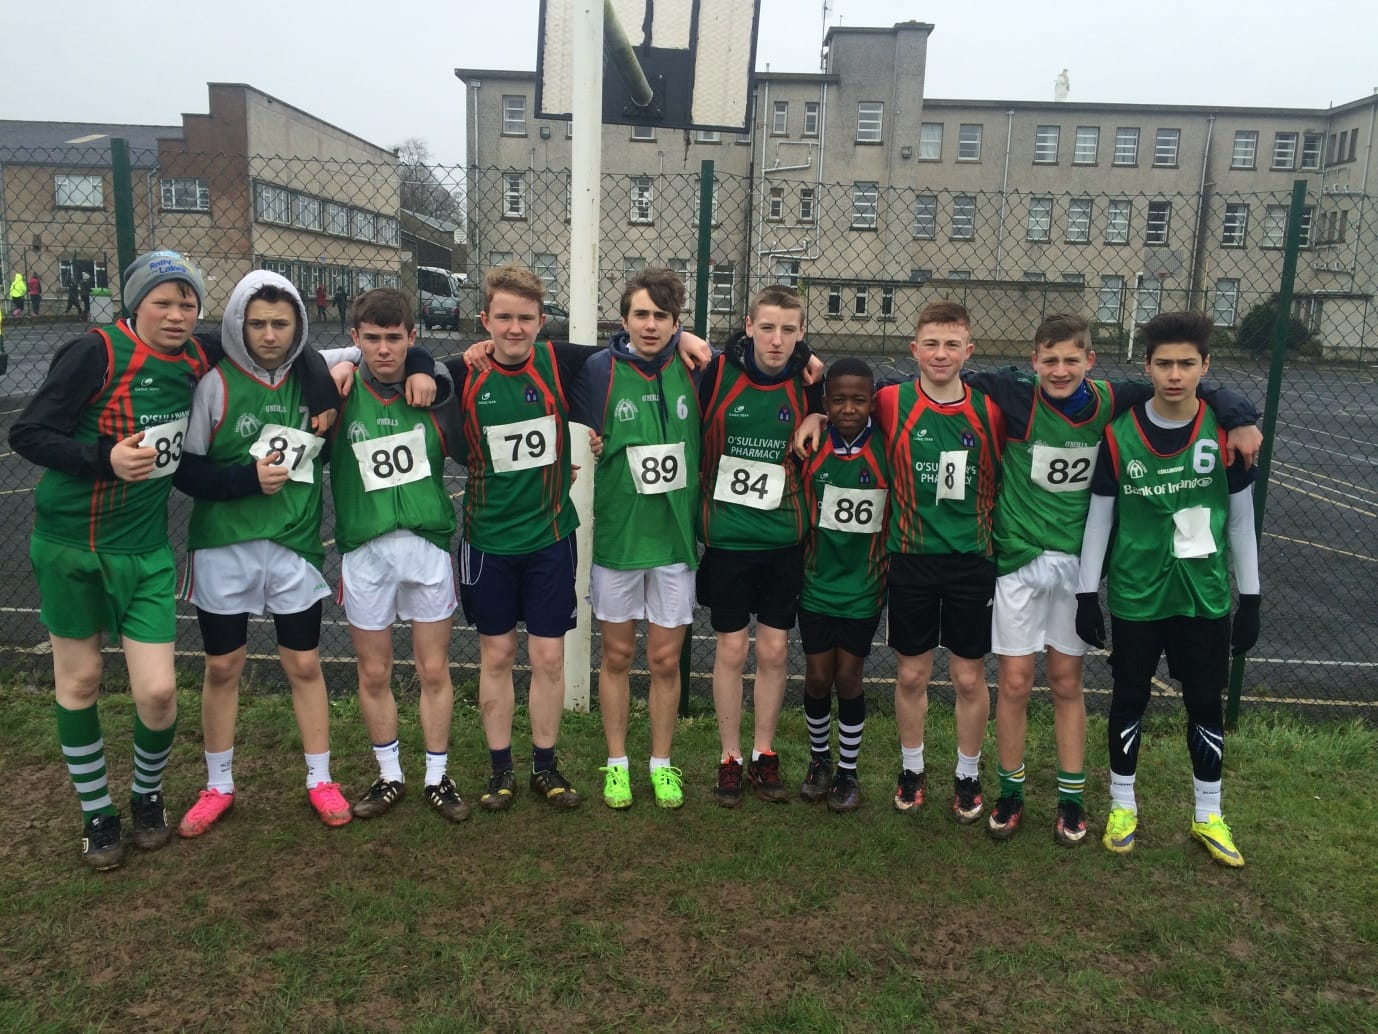 Desmond College Boys U15 Team at the North Munster Cross Country Championships in Pallaskenry recently